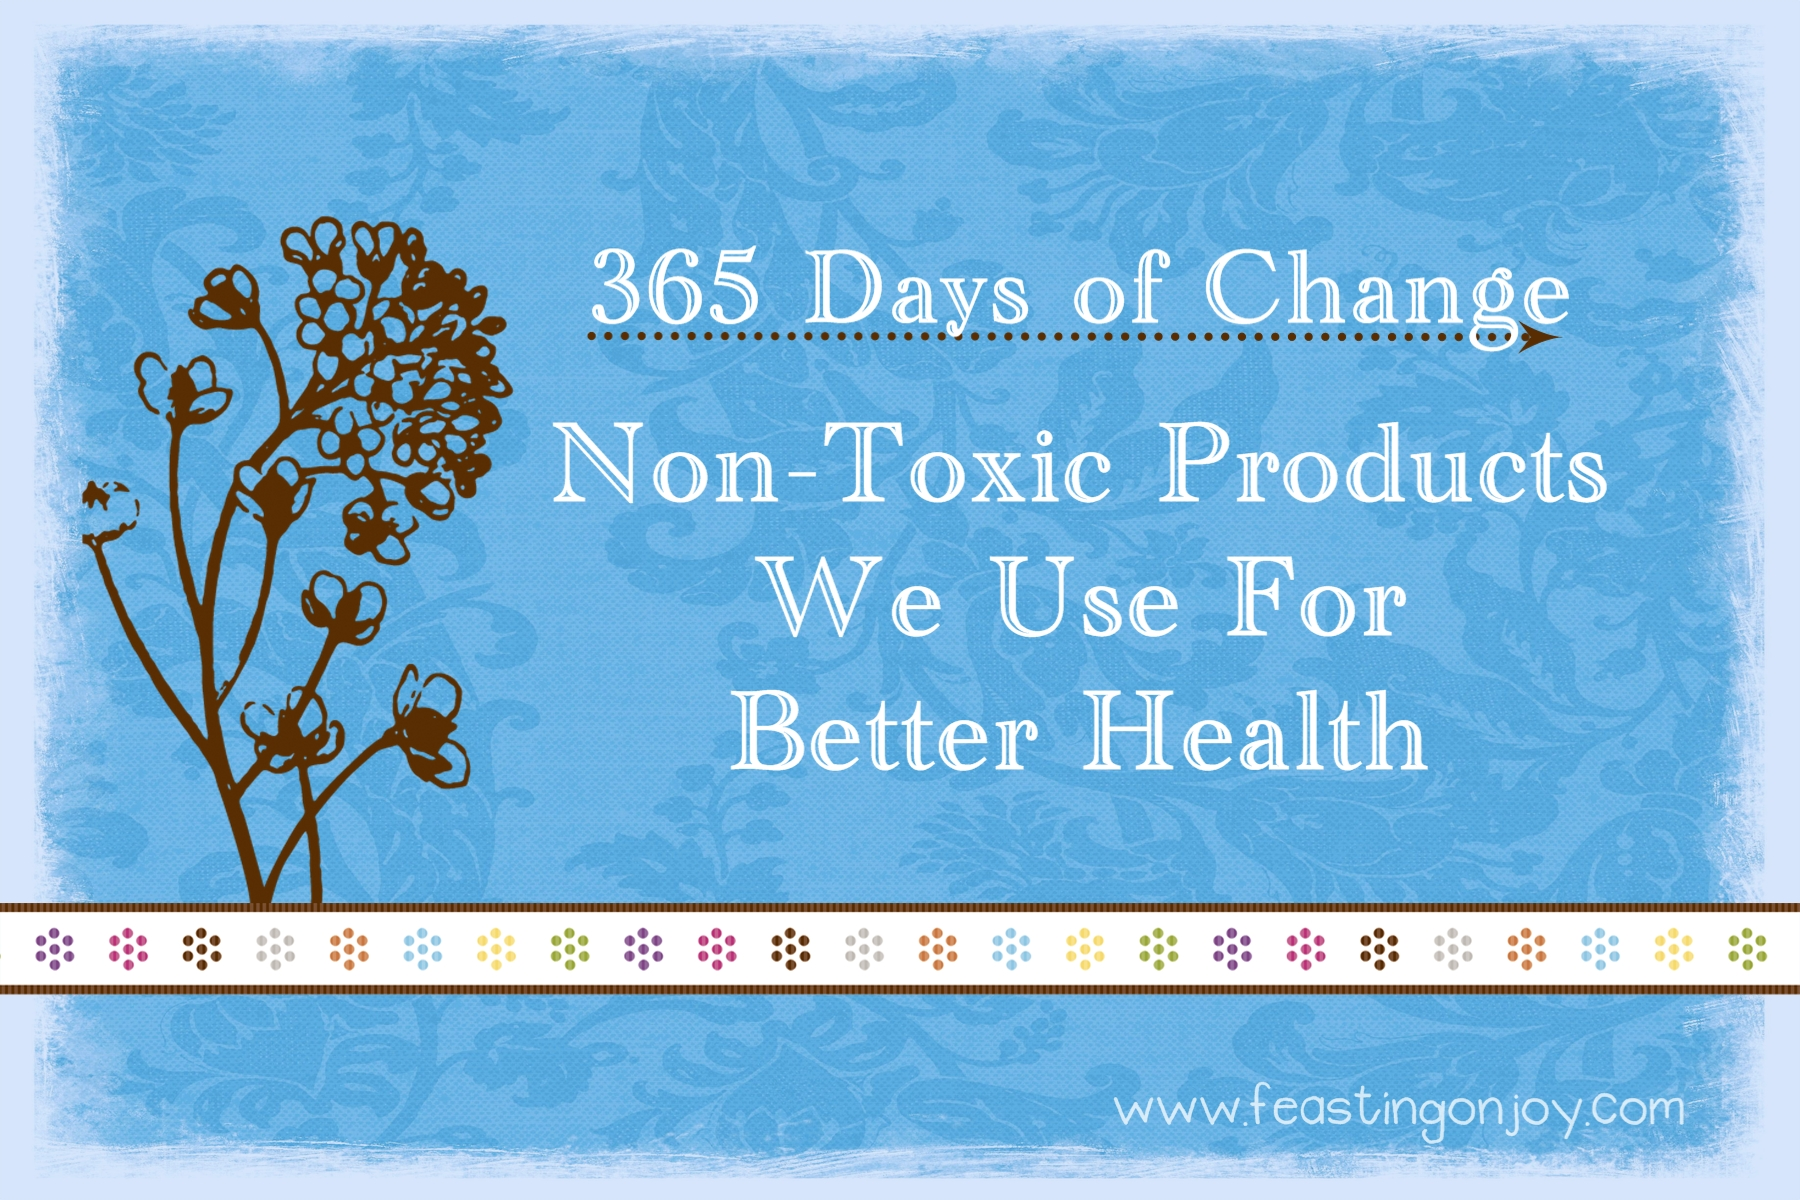 365 days of change: non-toxic products we use for better health